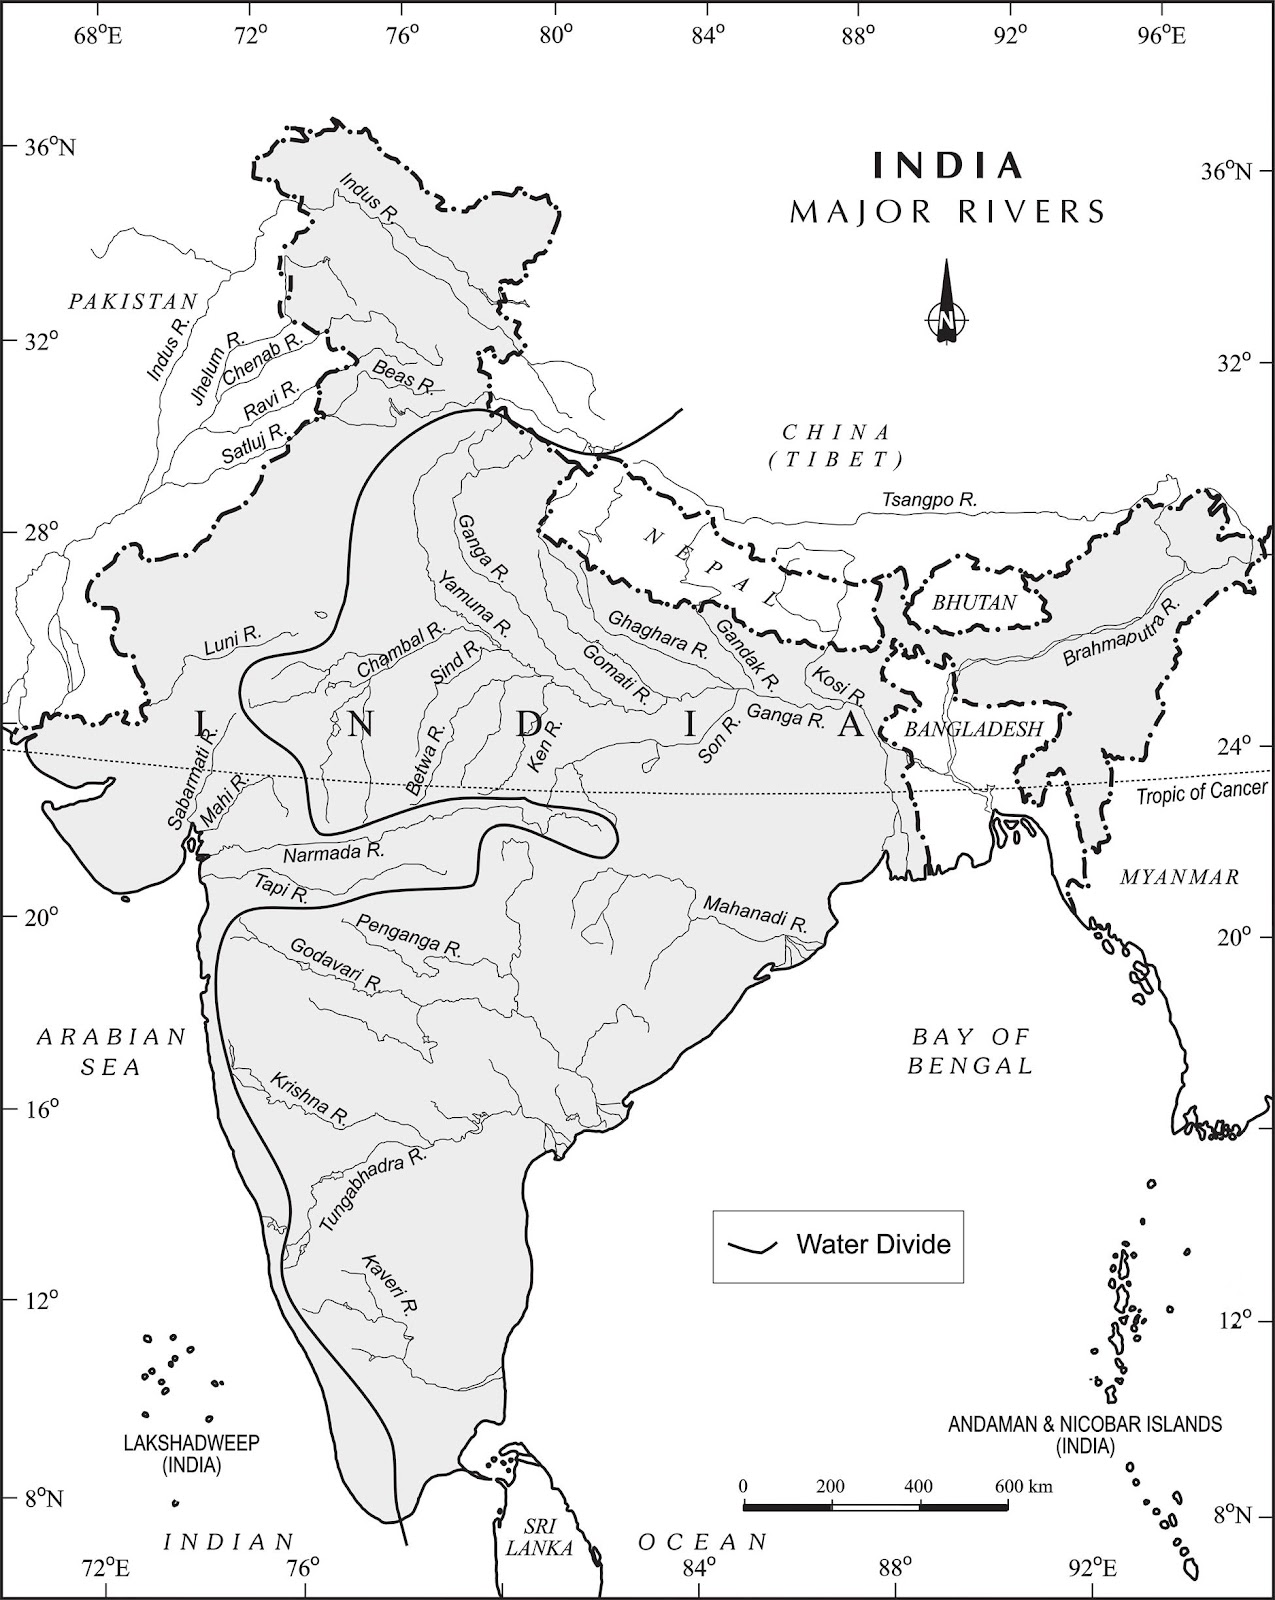 Major Rivers of India